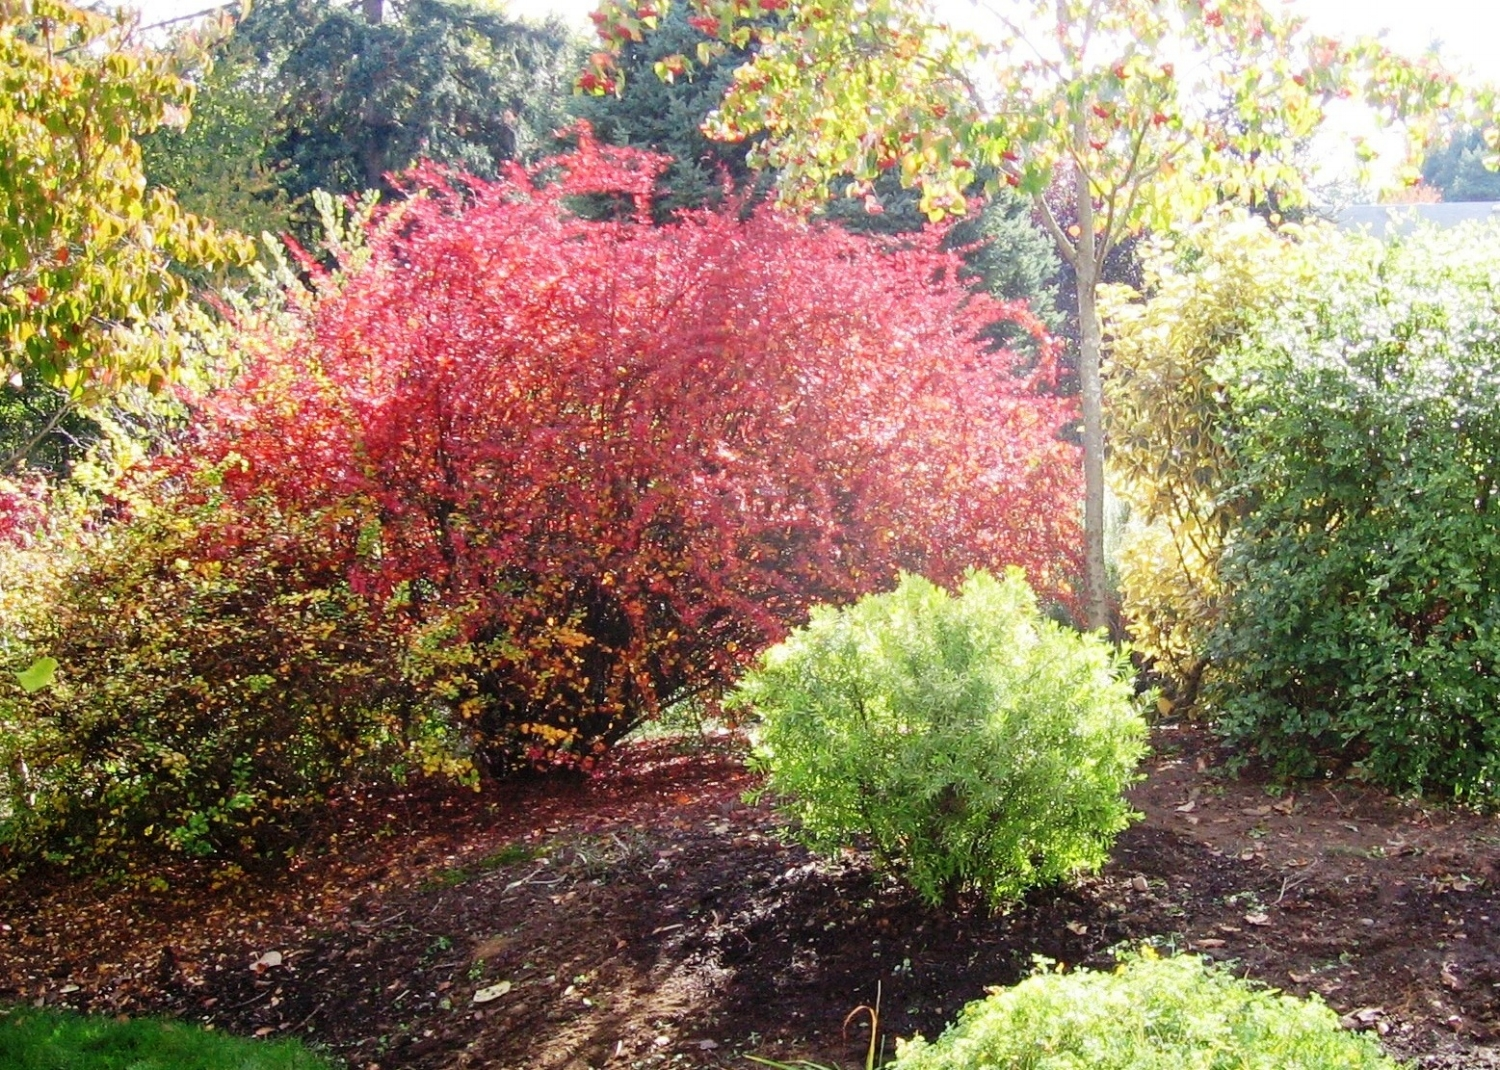 This is a pic from a few years back, with the south sun behind the red fall color of the barberry. In this shot, I had just pruned up the branches off the ground. That helps a barberry look more tidy, and makes horsetail removal easier. But it doesn't last very long (the low branches grow back), and it is a wicked, needle-filled job.